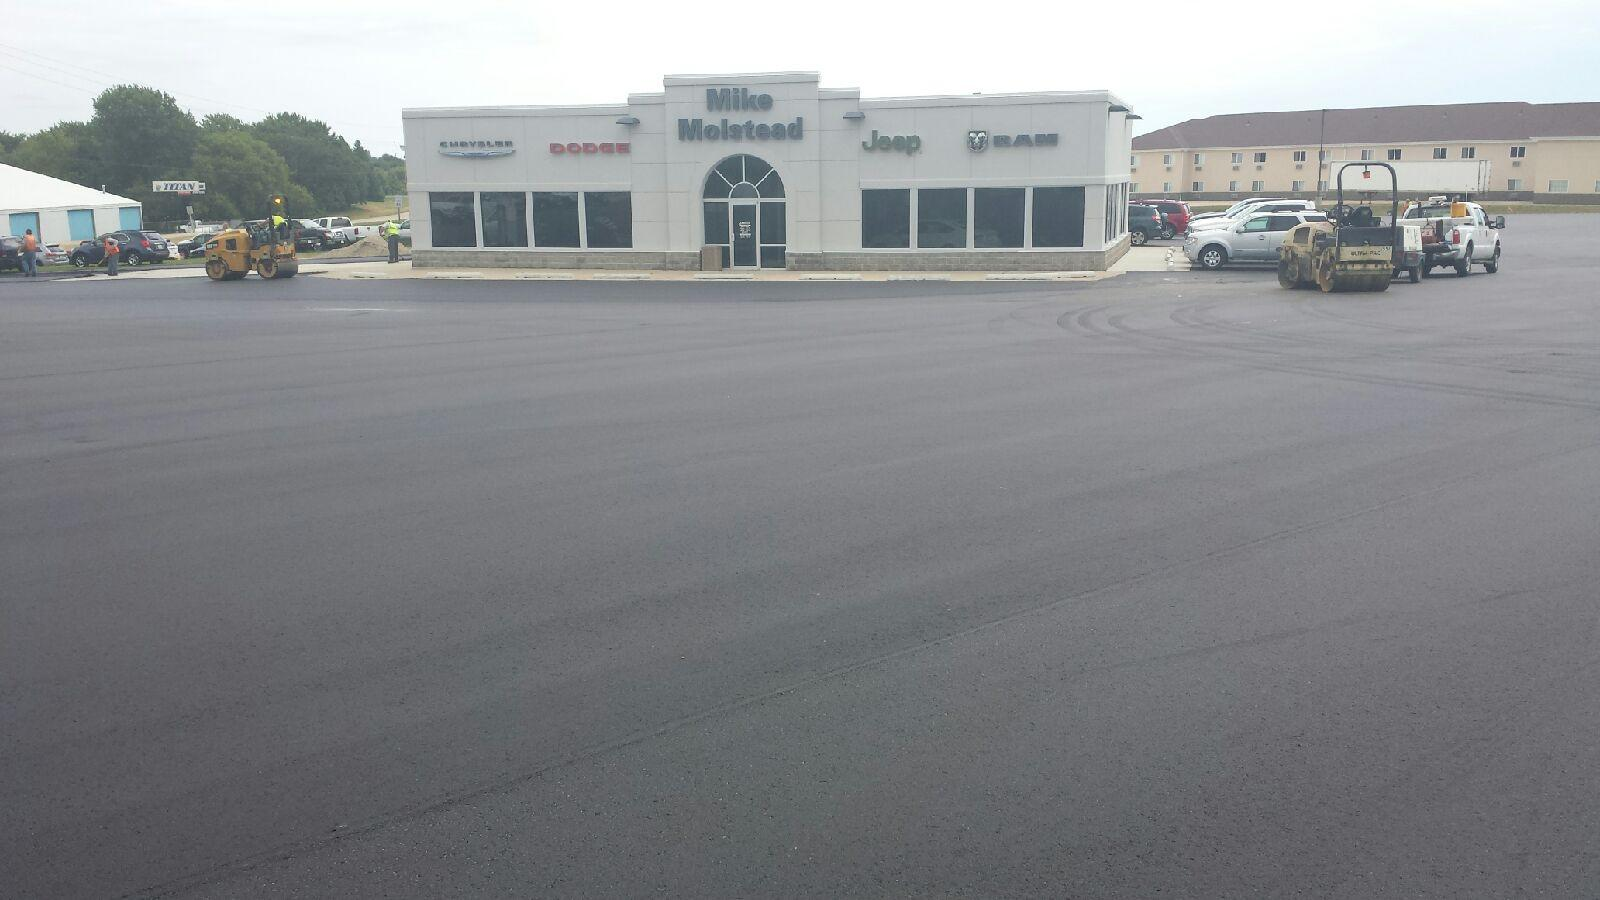 Molstead motors charles city parking lot heartland asphalt for Community motors mason city